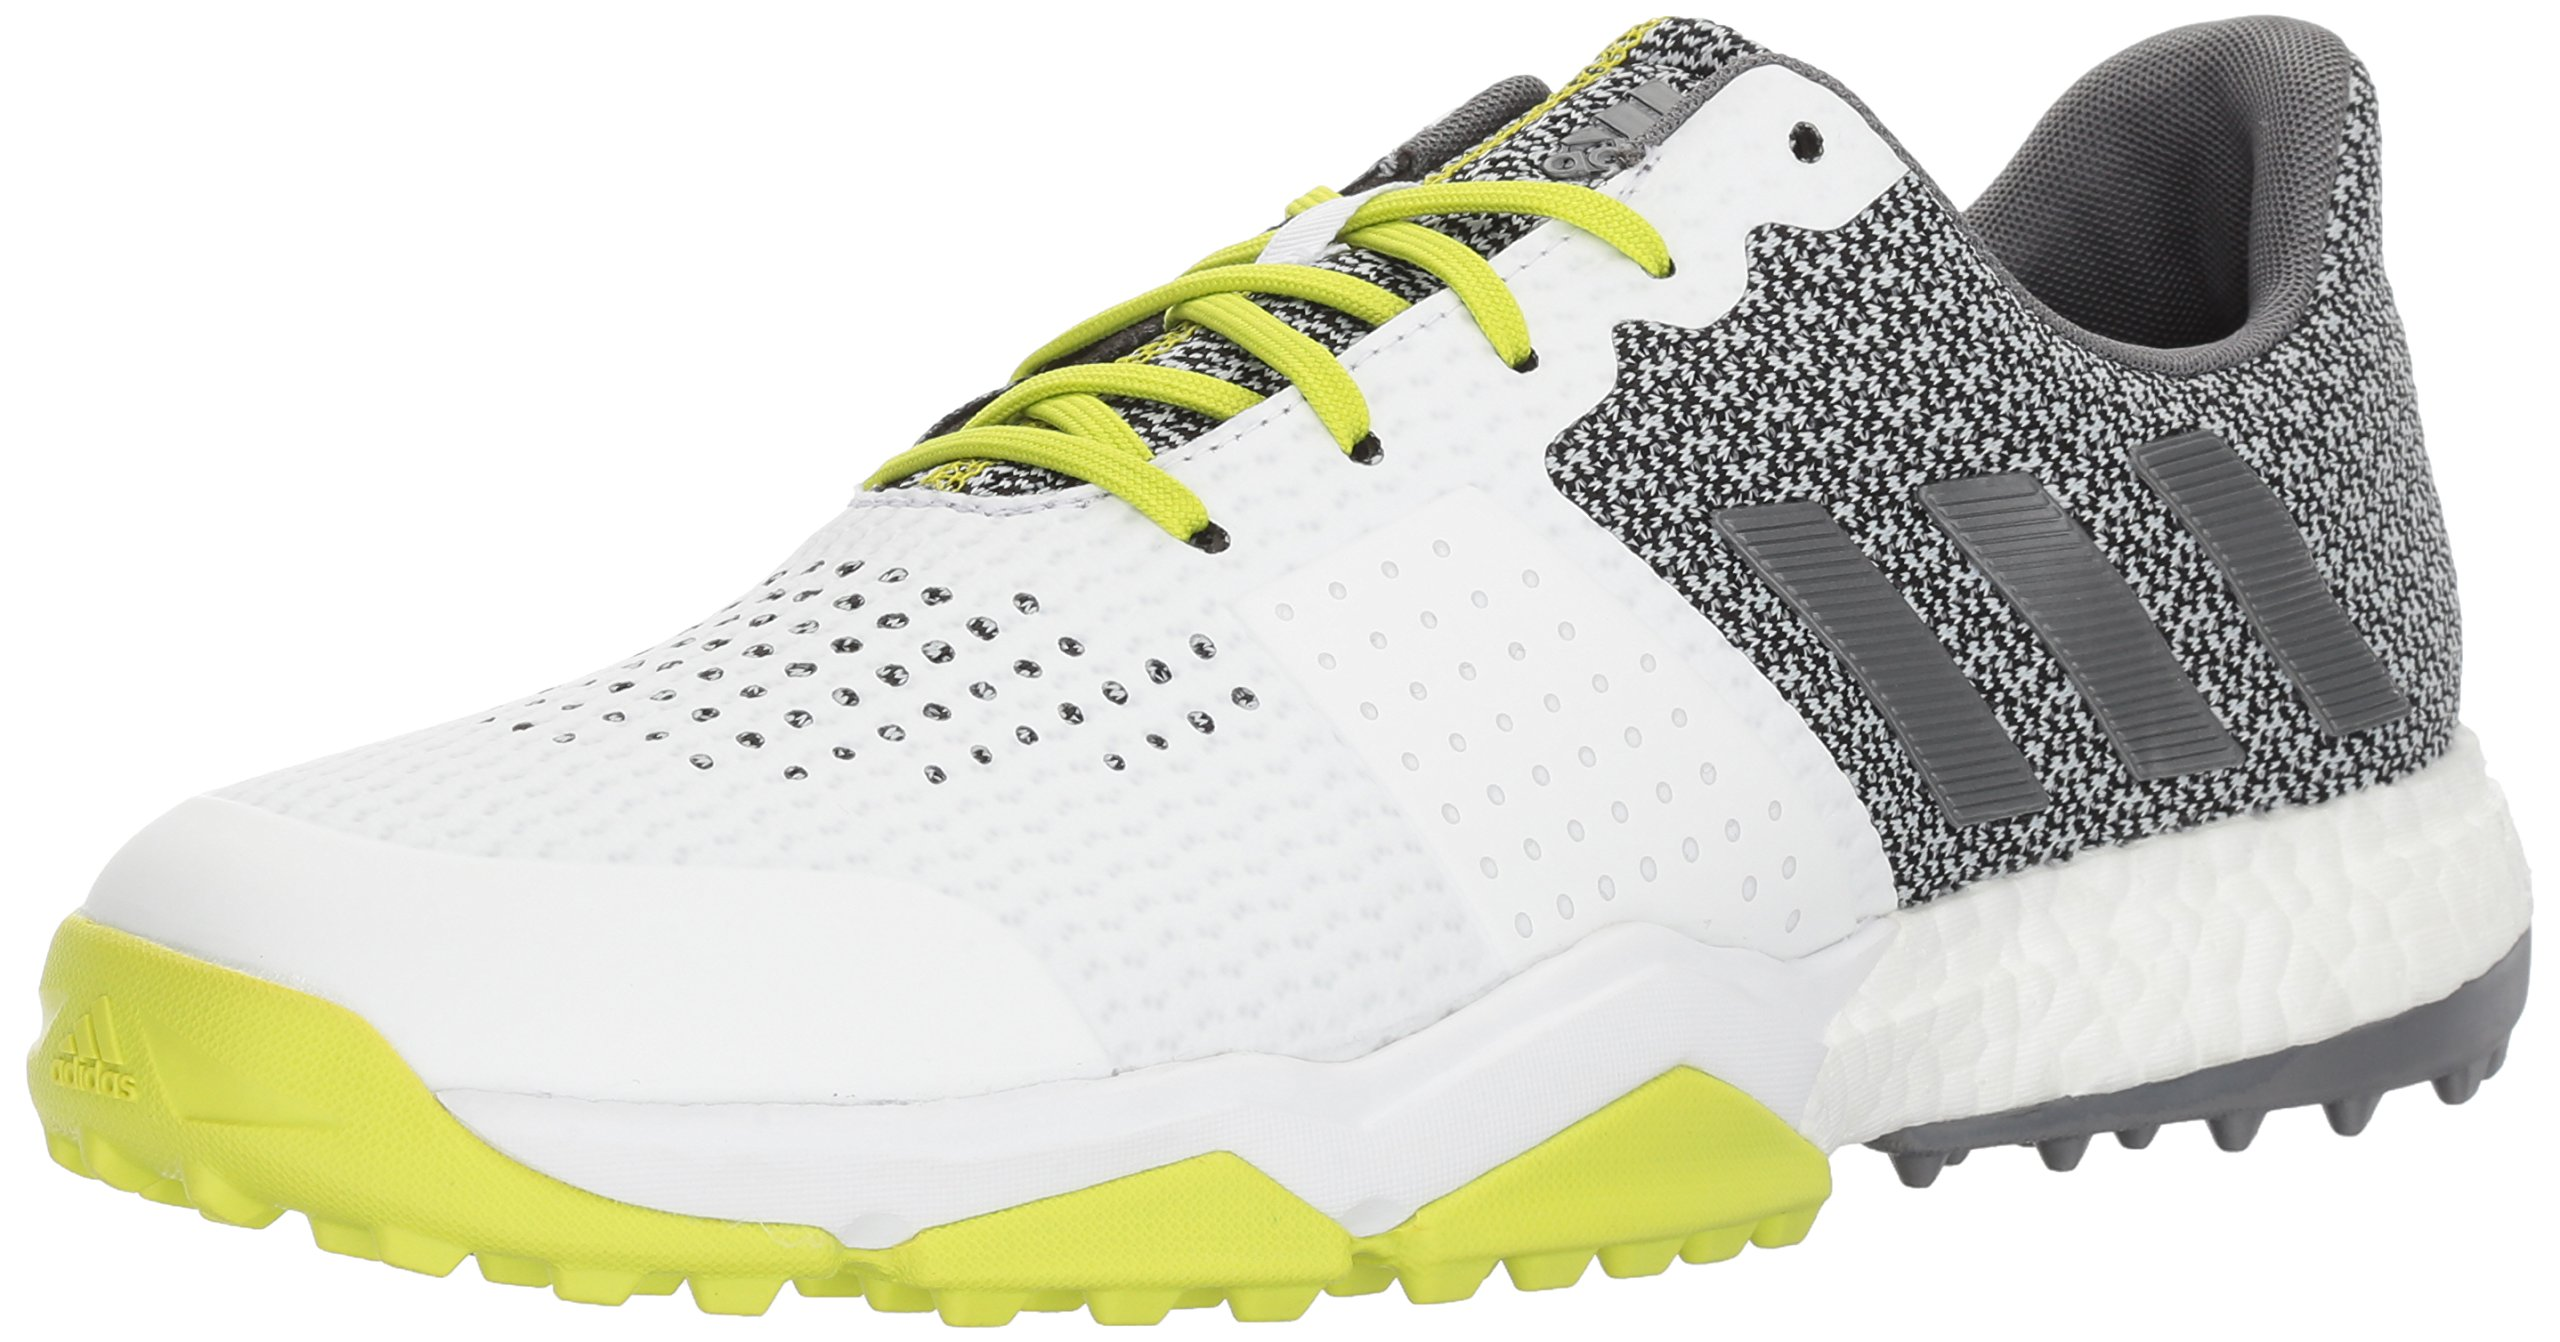 adidas Golf Men's Adipower S Boost 3 Golf Shoe